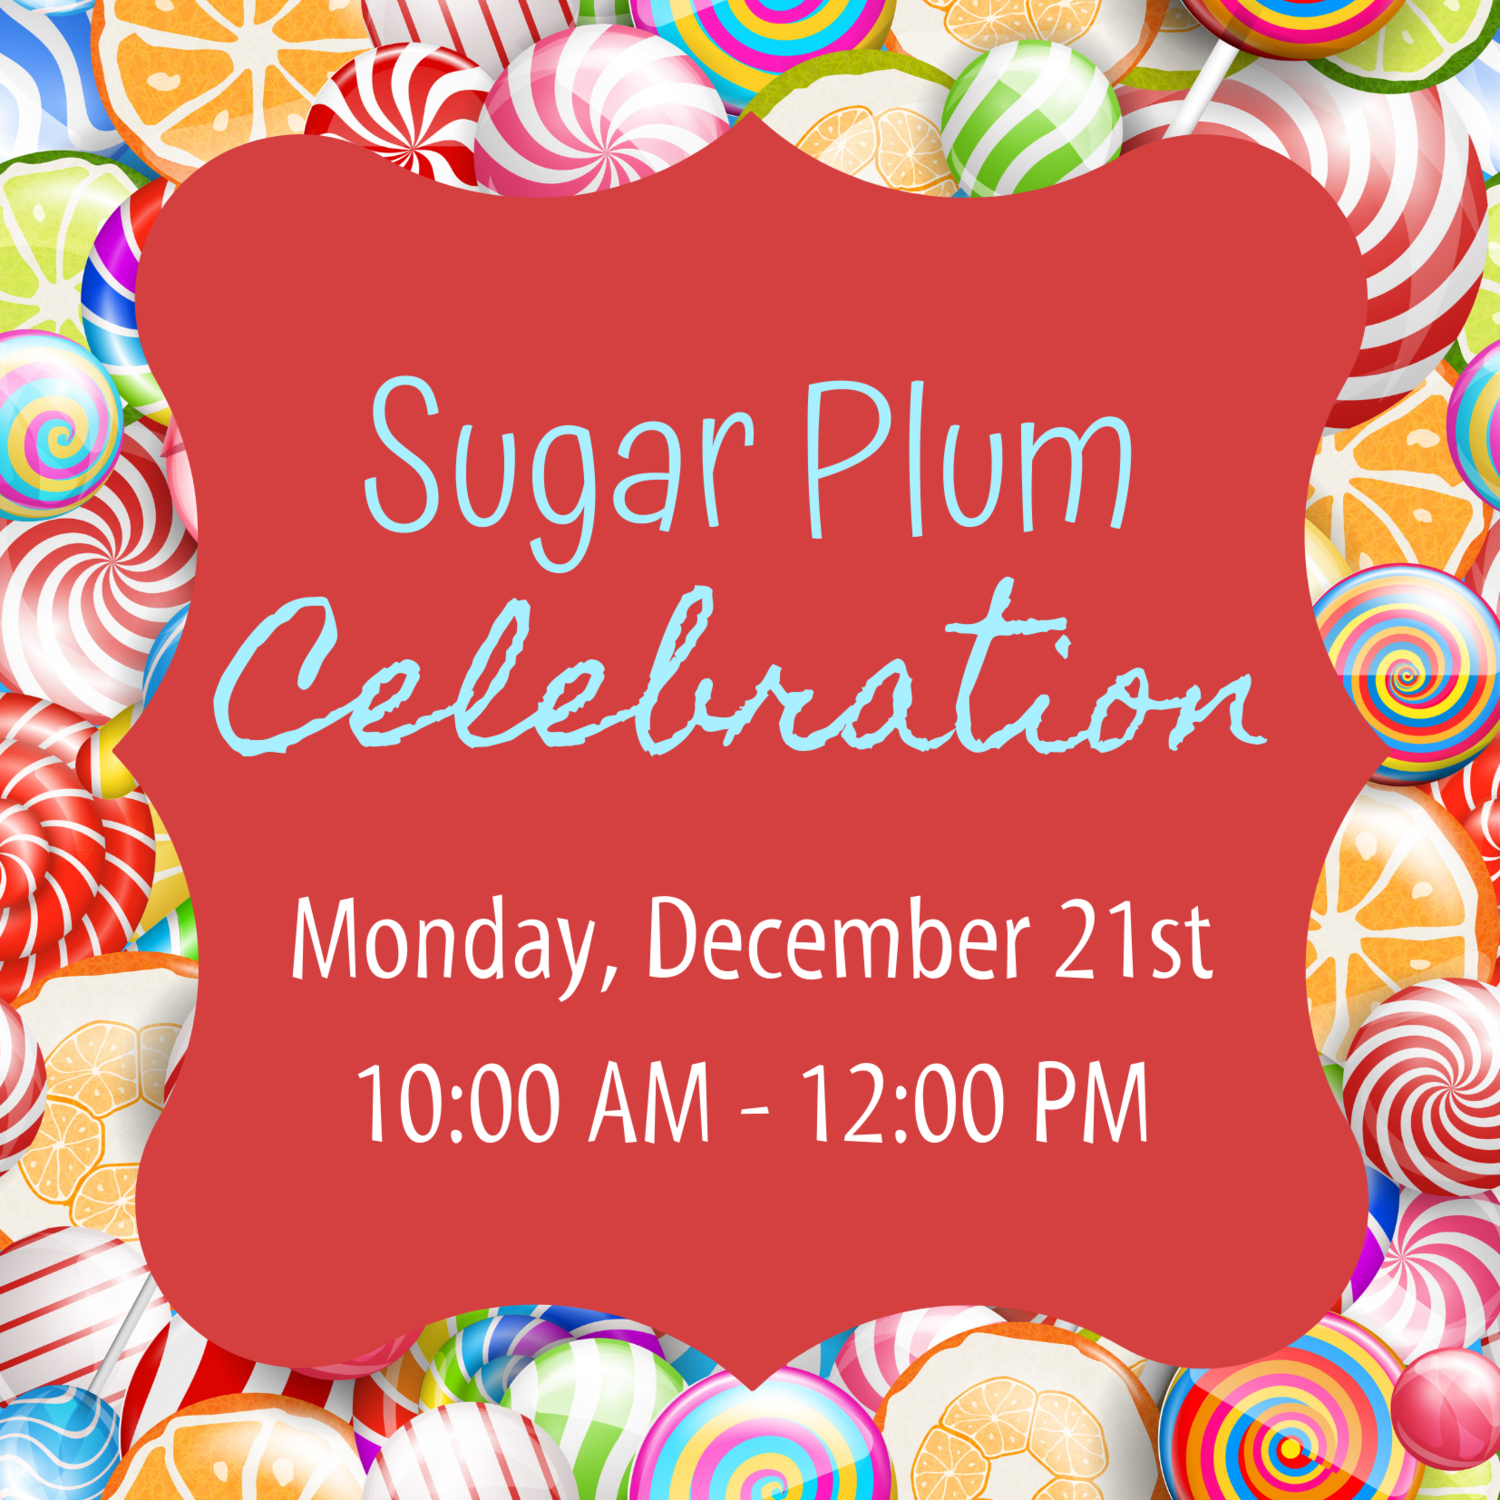 Sugar Plum Celebration - Monday, December 21st